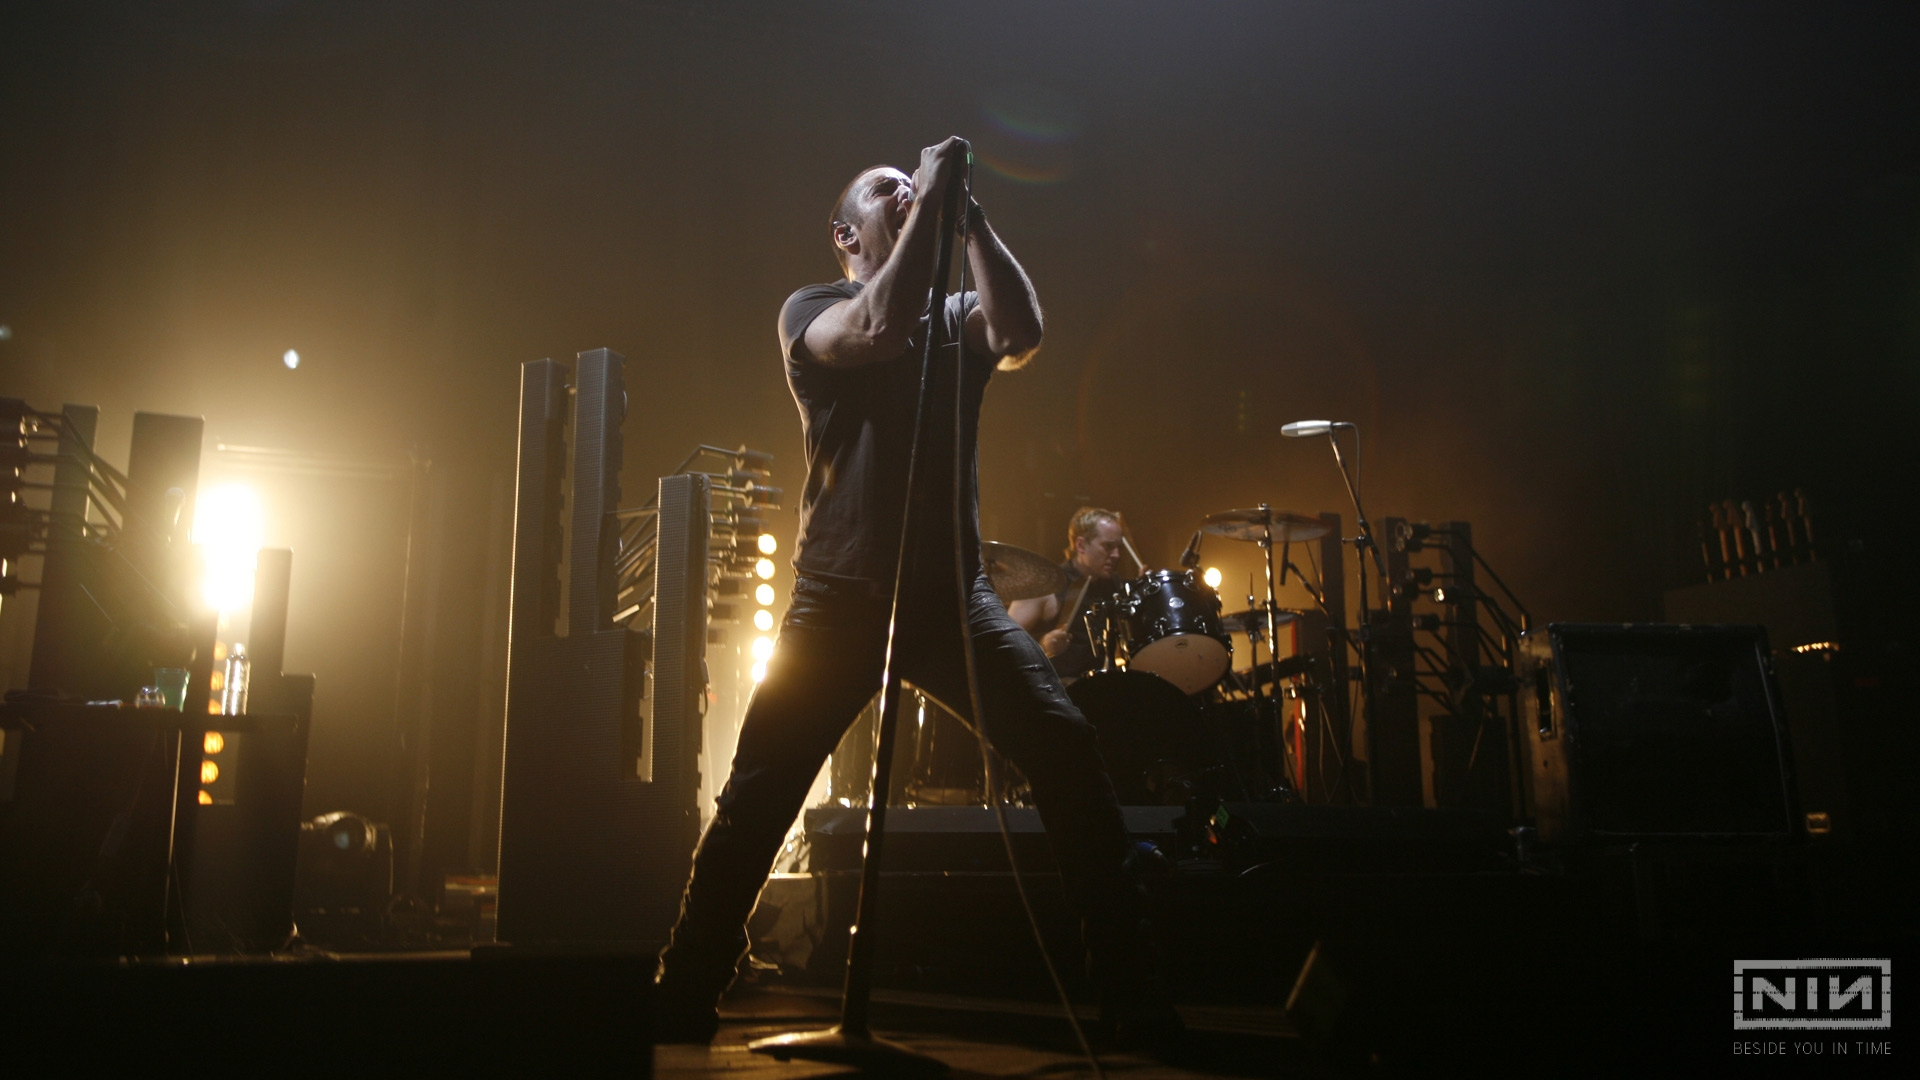 Download Wallpaper 1920x1080 nine inch nails, show, soloist, drum ...